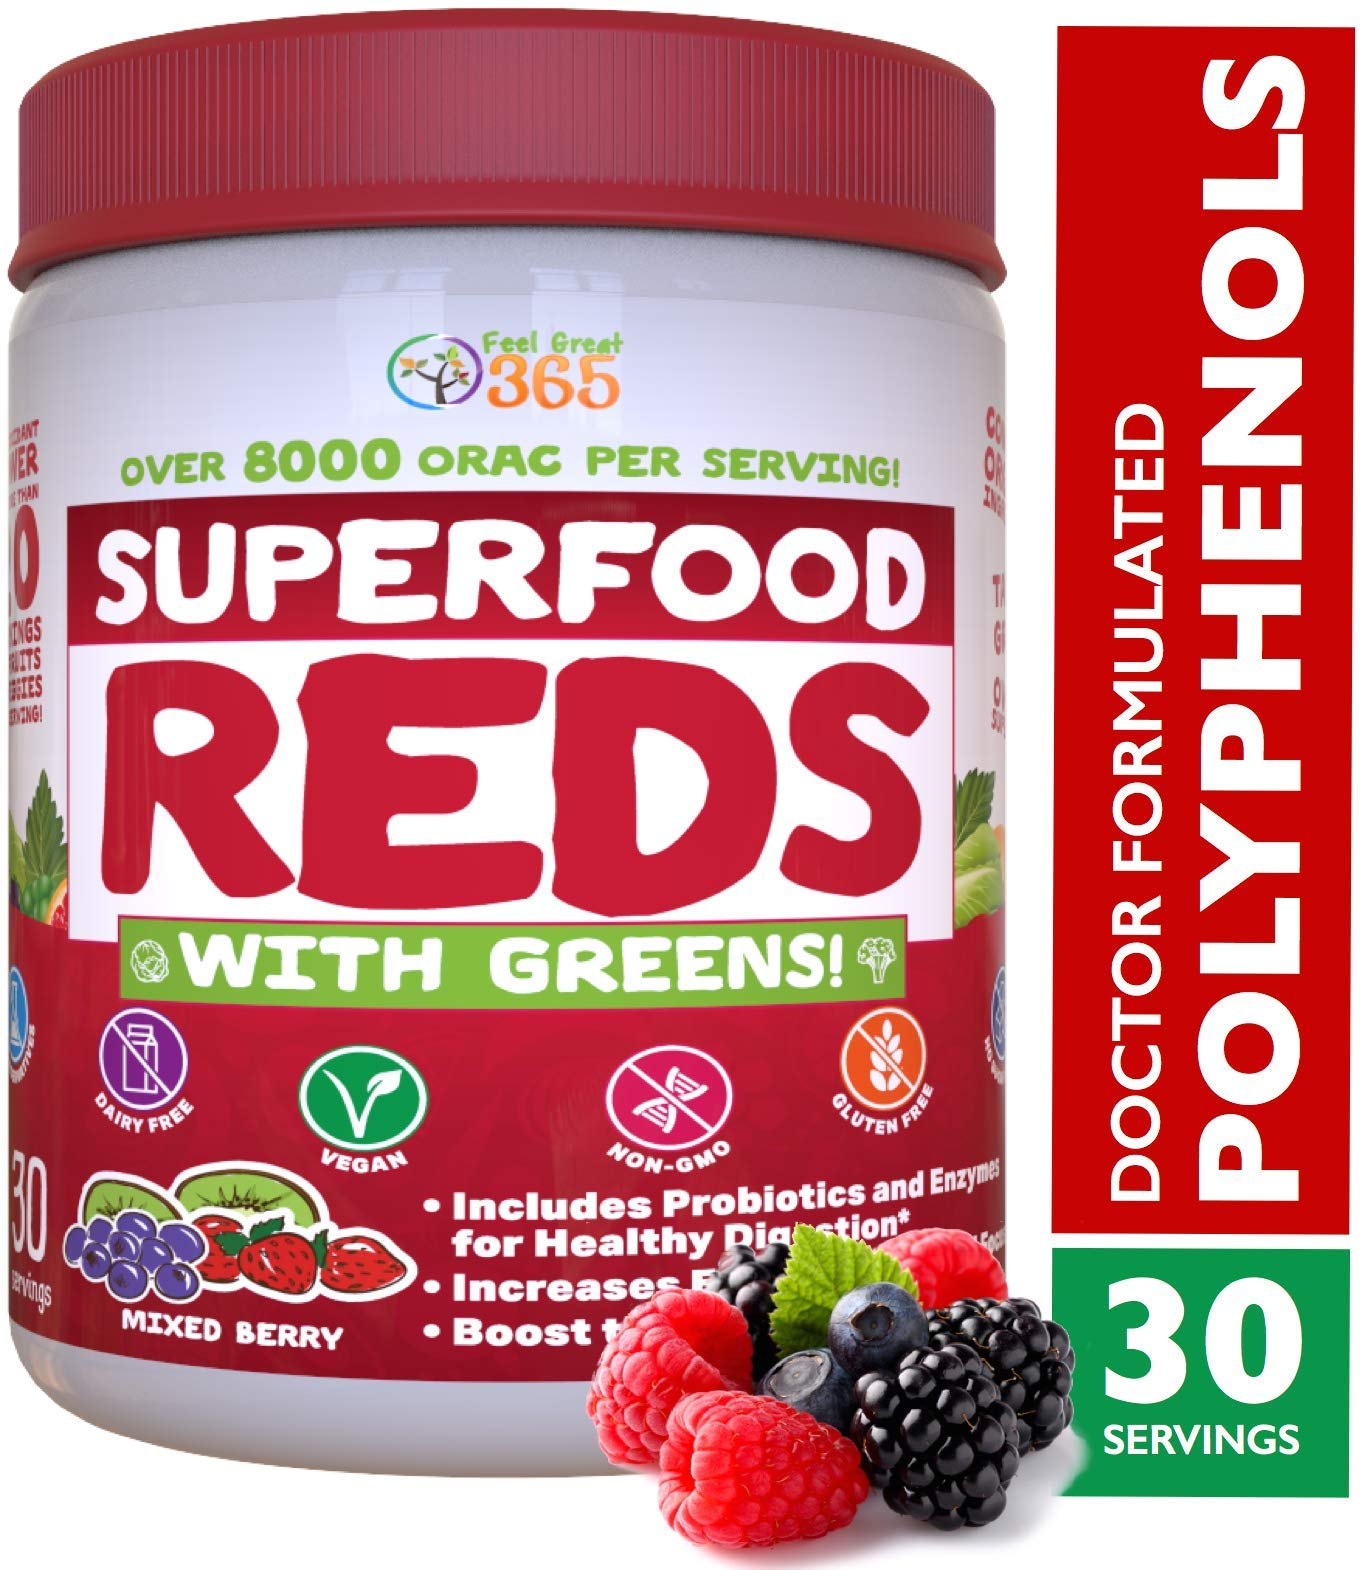 Superfood Vital Reds with Greens Juice Powder by Feel Great 365, Doctor Formulated,100% Non-GMO, Whole Food Multivitamin Powder - Fruits, Vegetables, Probiotics, Digestive Enzymes & Polyphenols by Feel Great 365